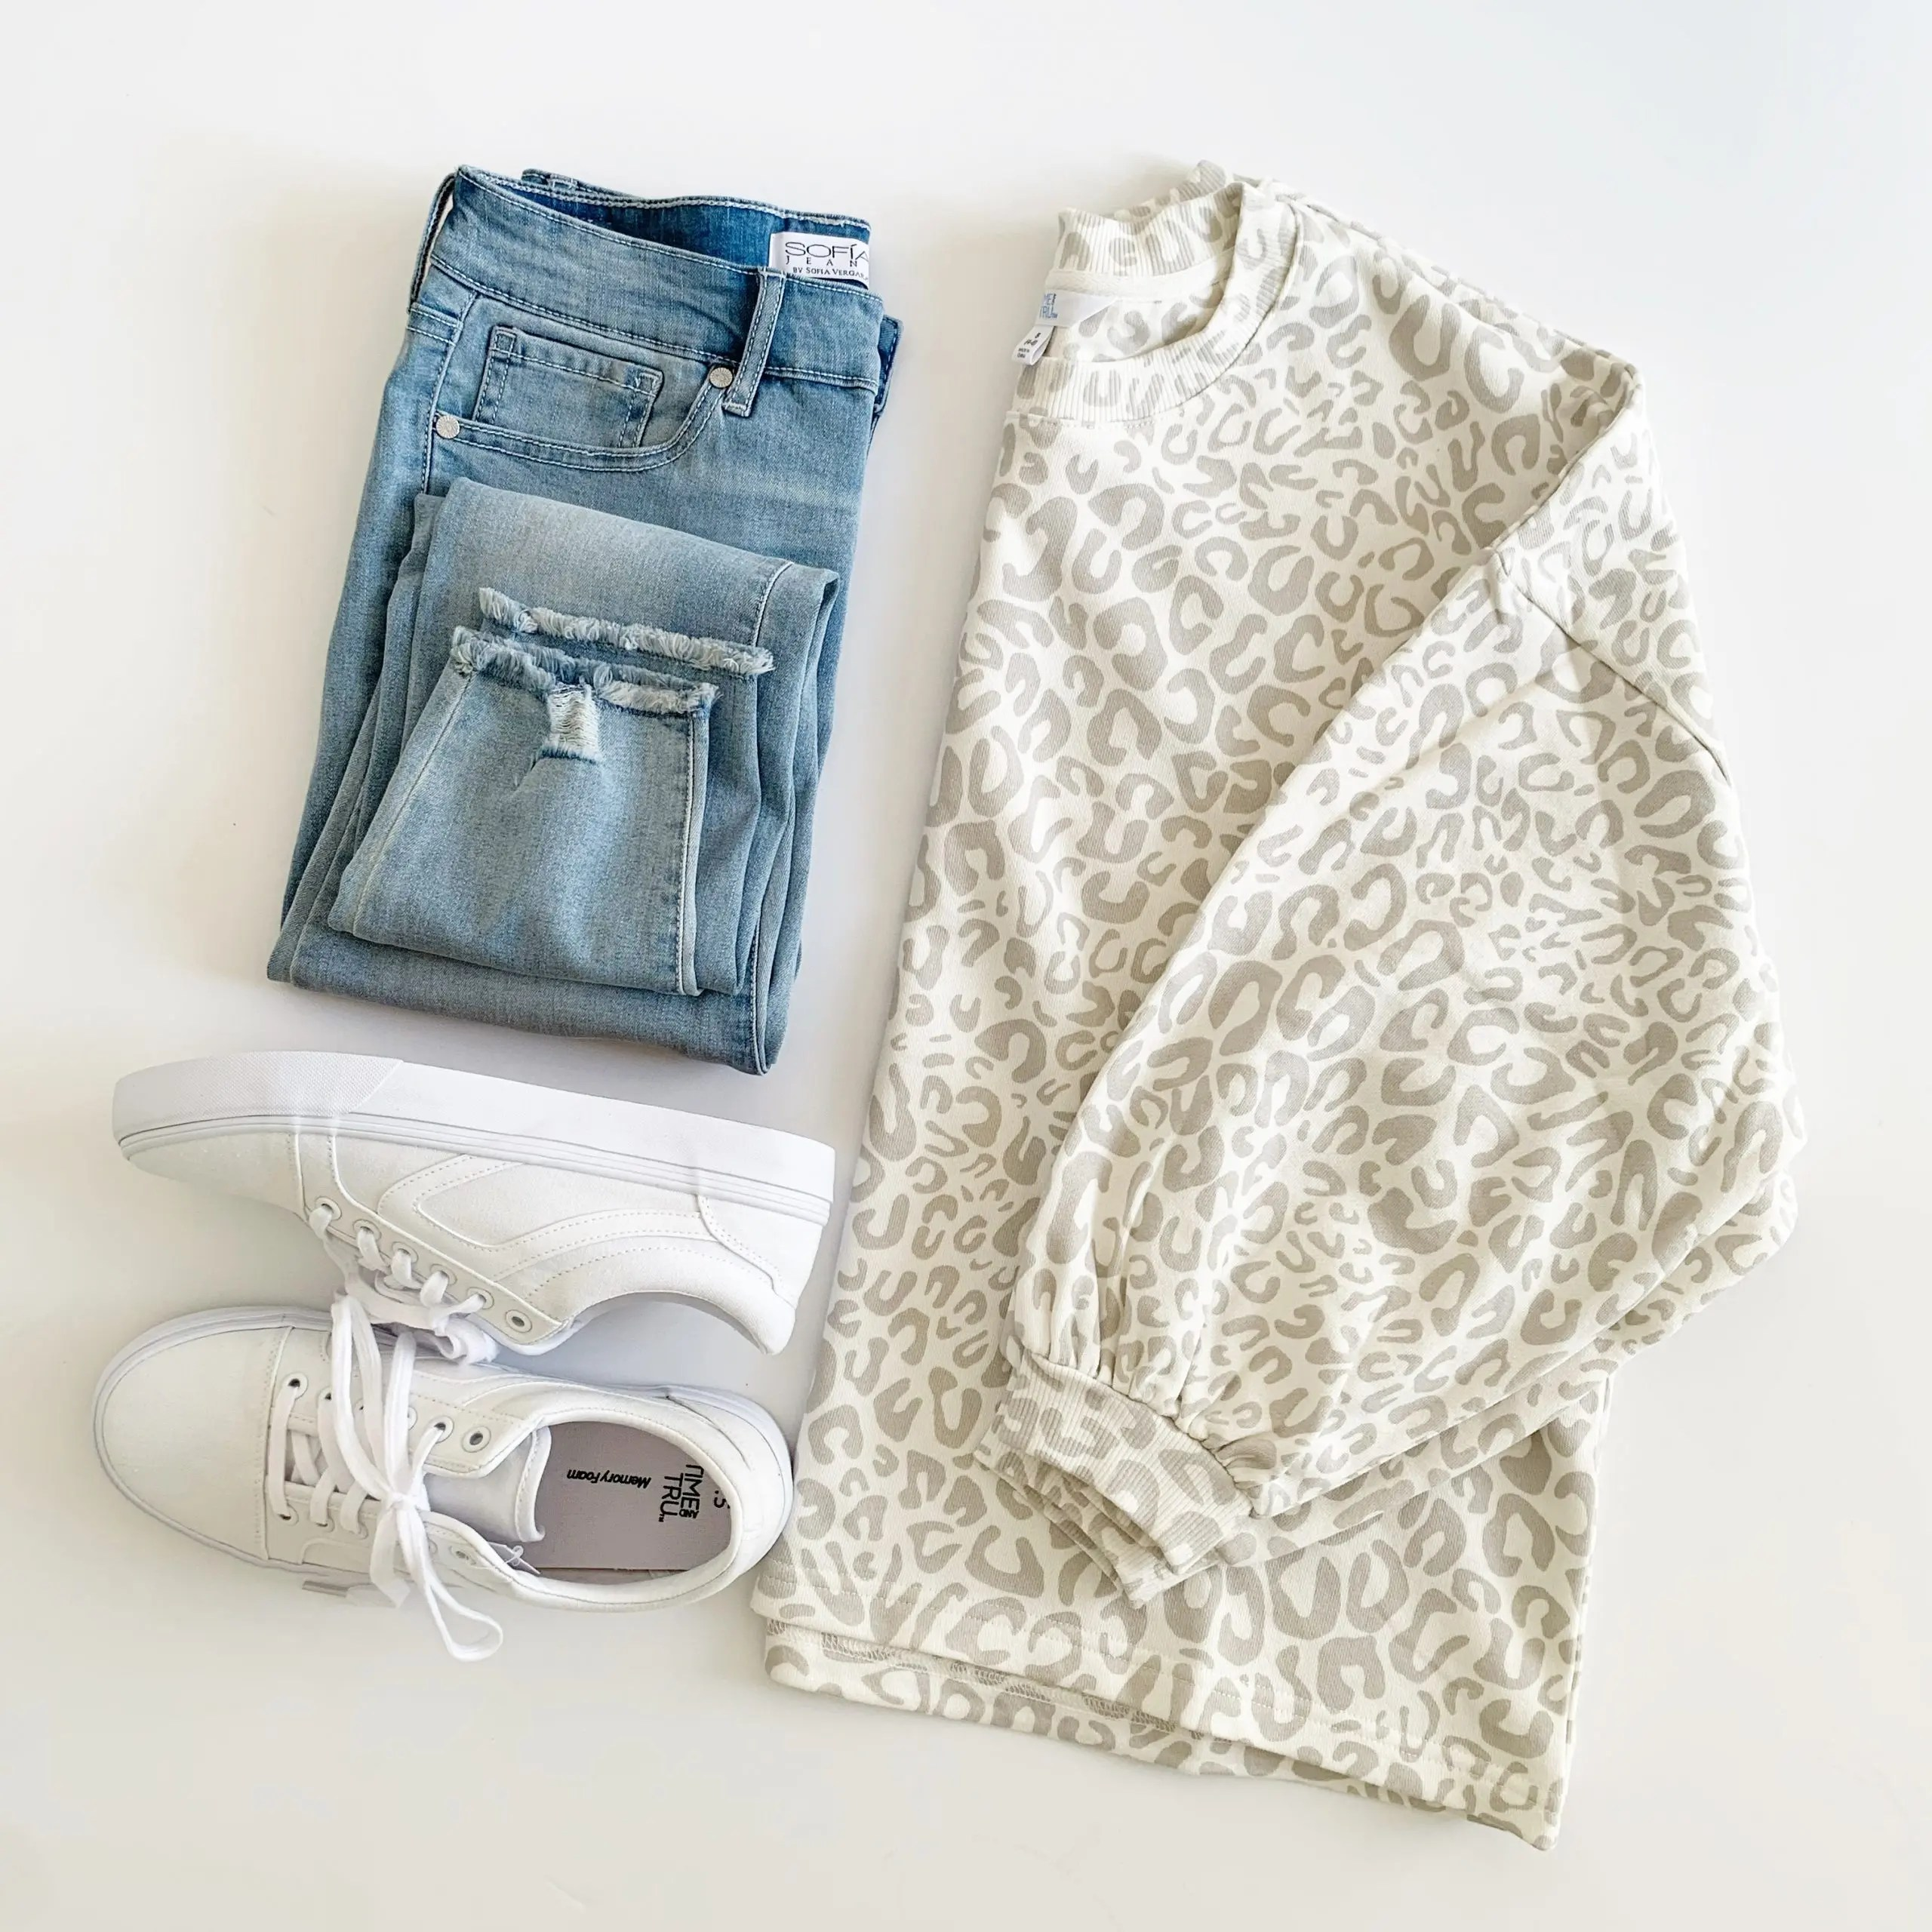 Time and Tru Leopard Print balloon sleeve sweatshirt and sneakers with sofia vergara jeans